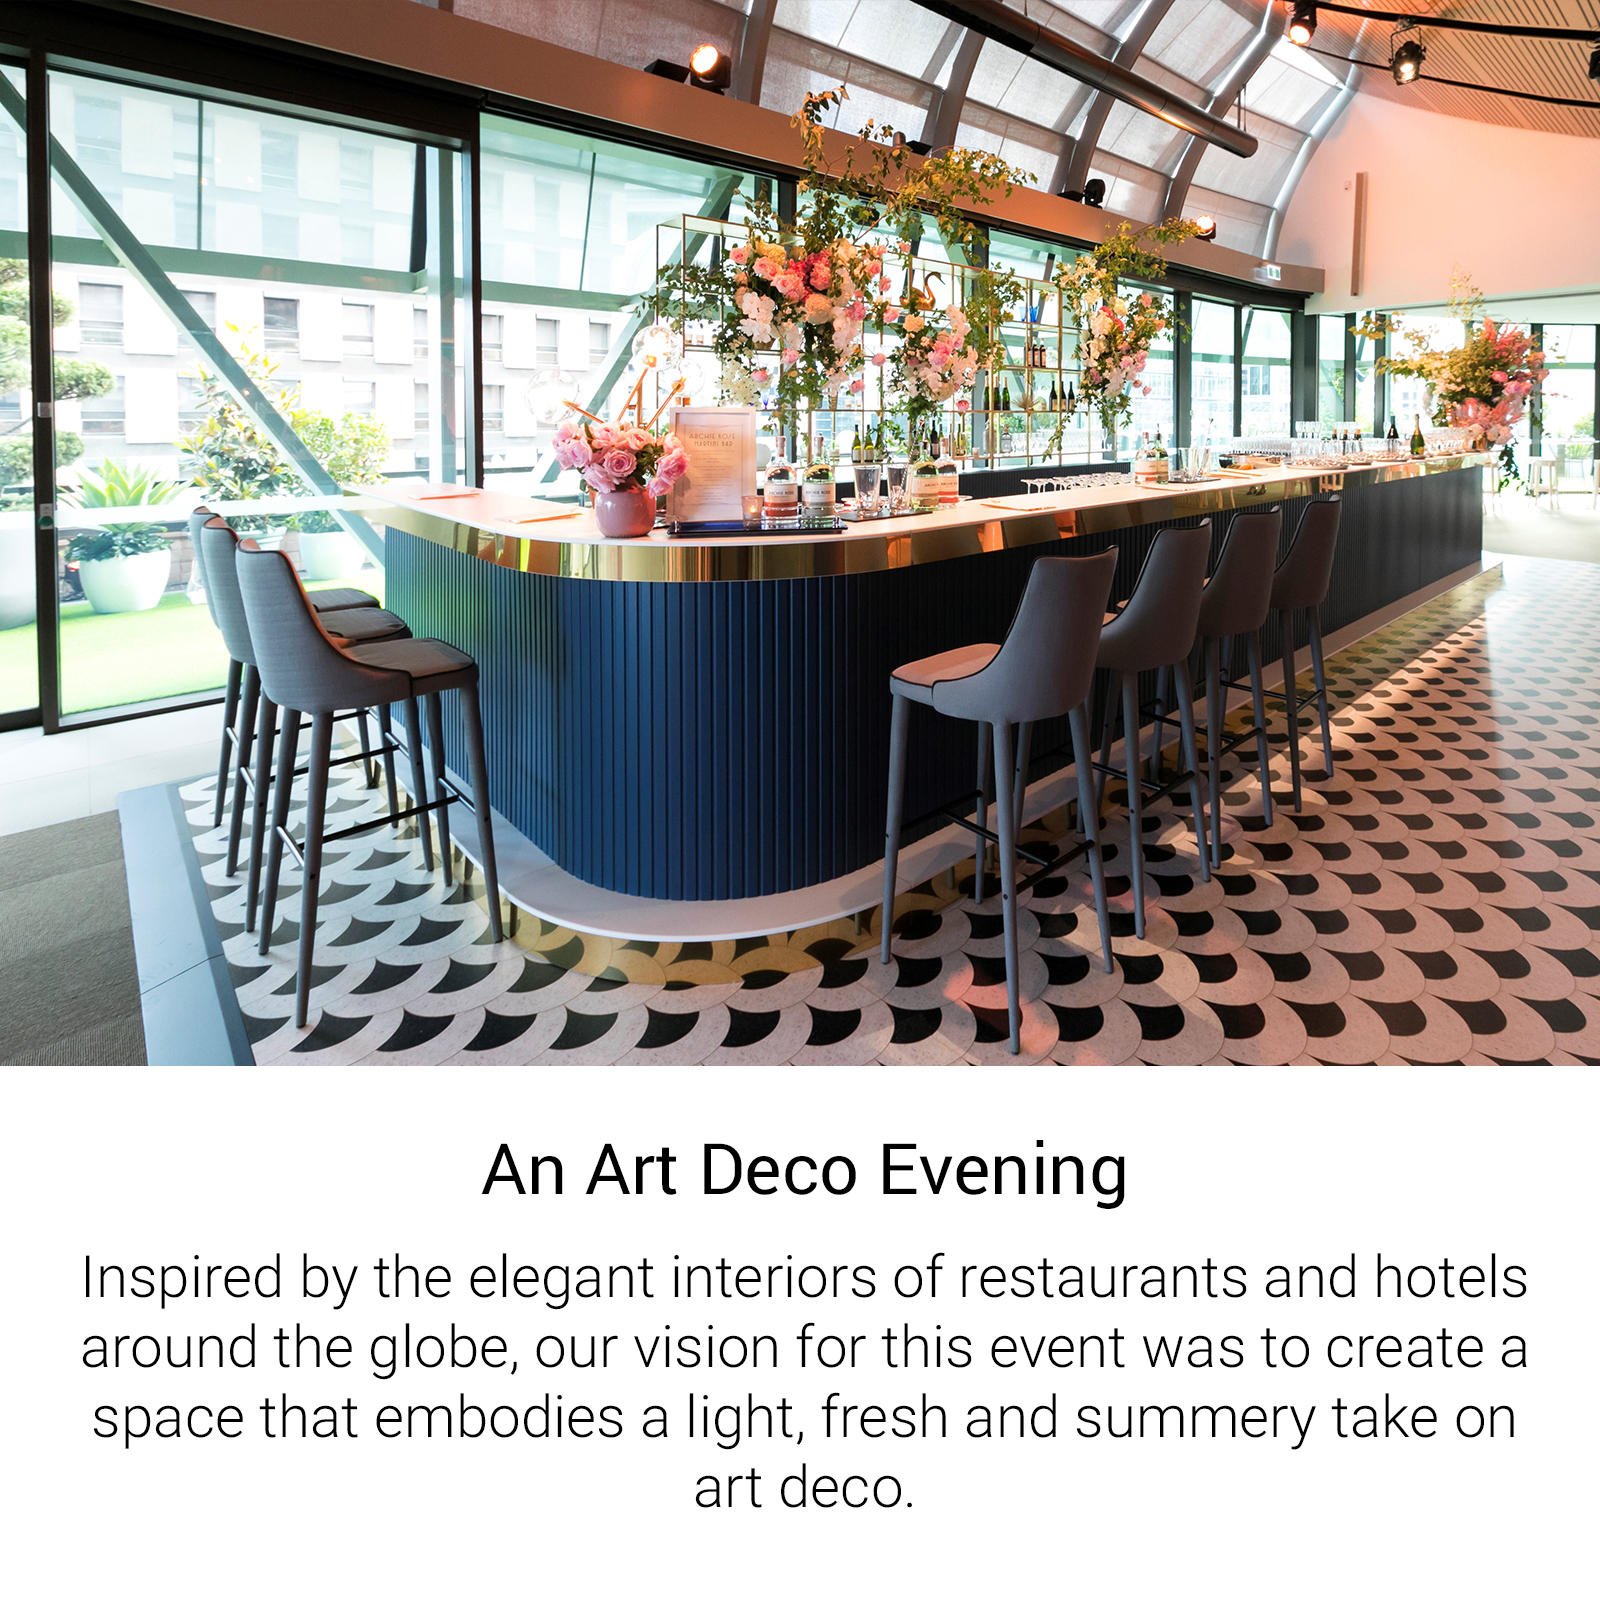 An Art Deco Evening